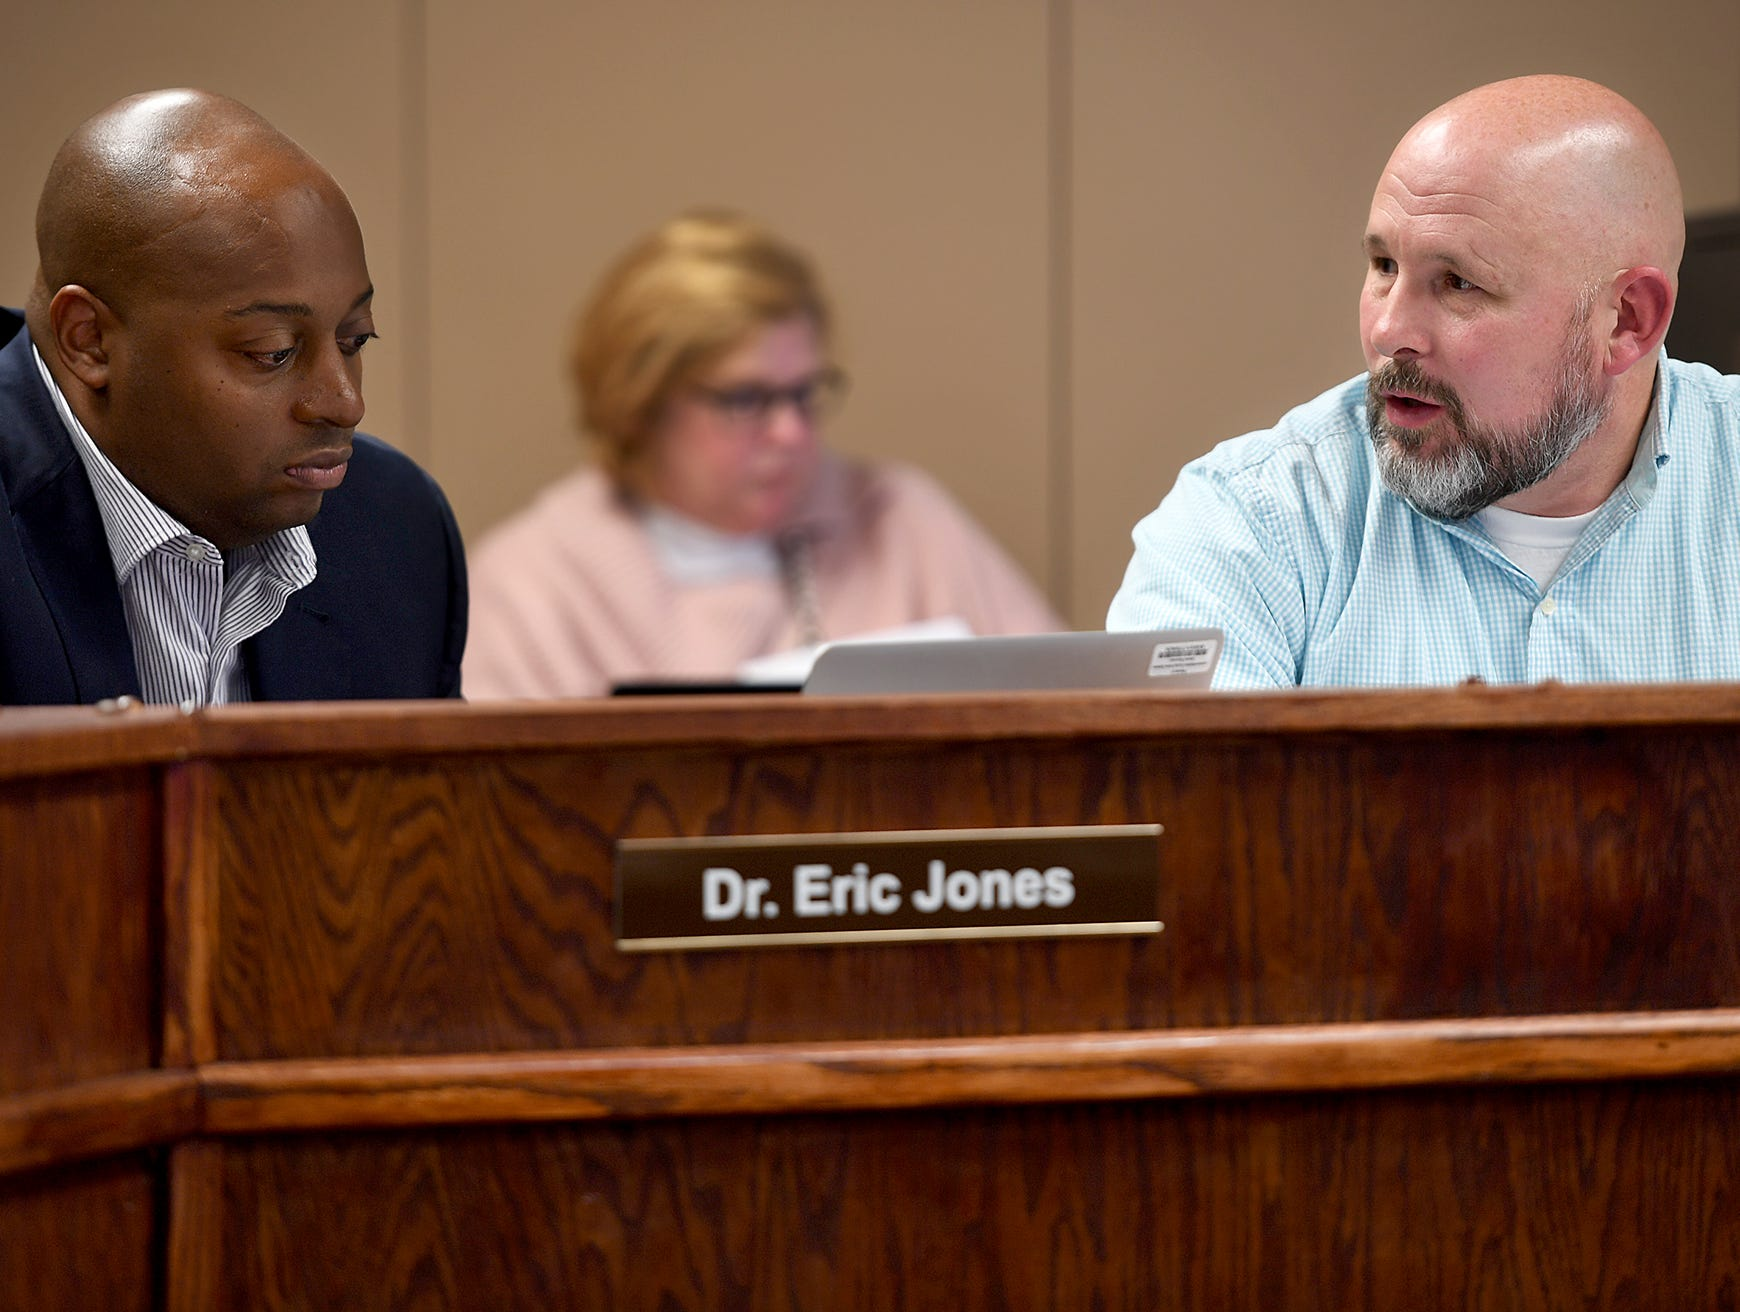 Jackson-Madison County Schools' Superintendent Dr. Eric Jones and Chairman Kevin Alexander discuss one of the items on the agenda during their November 8 board meeting.